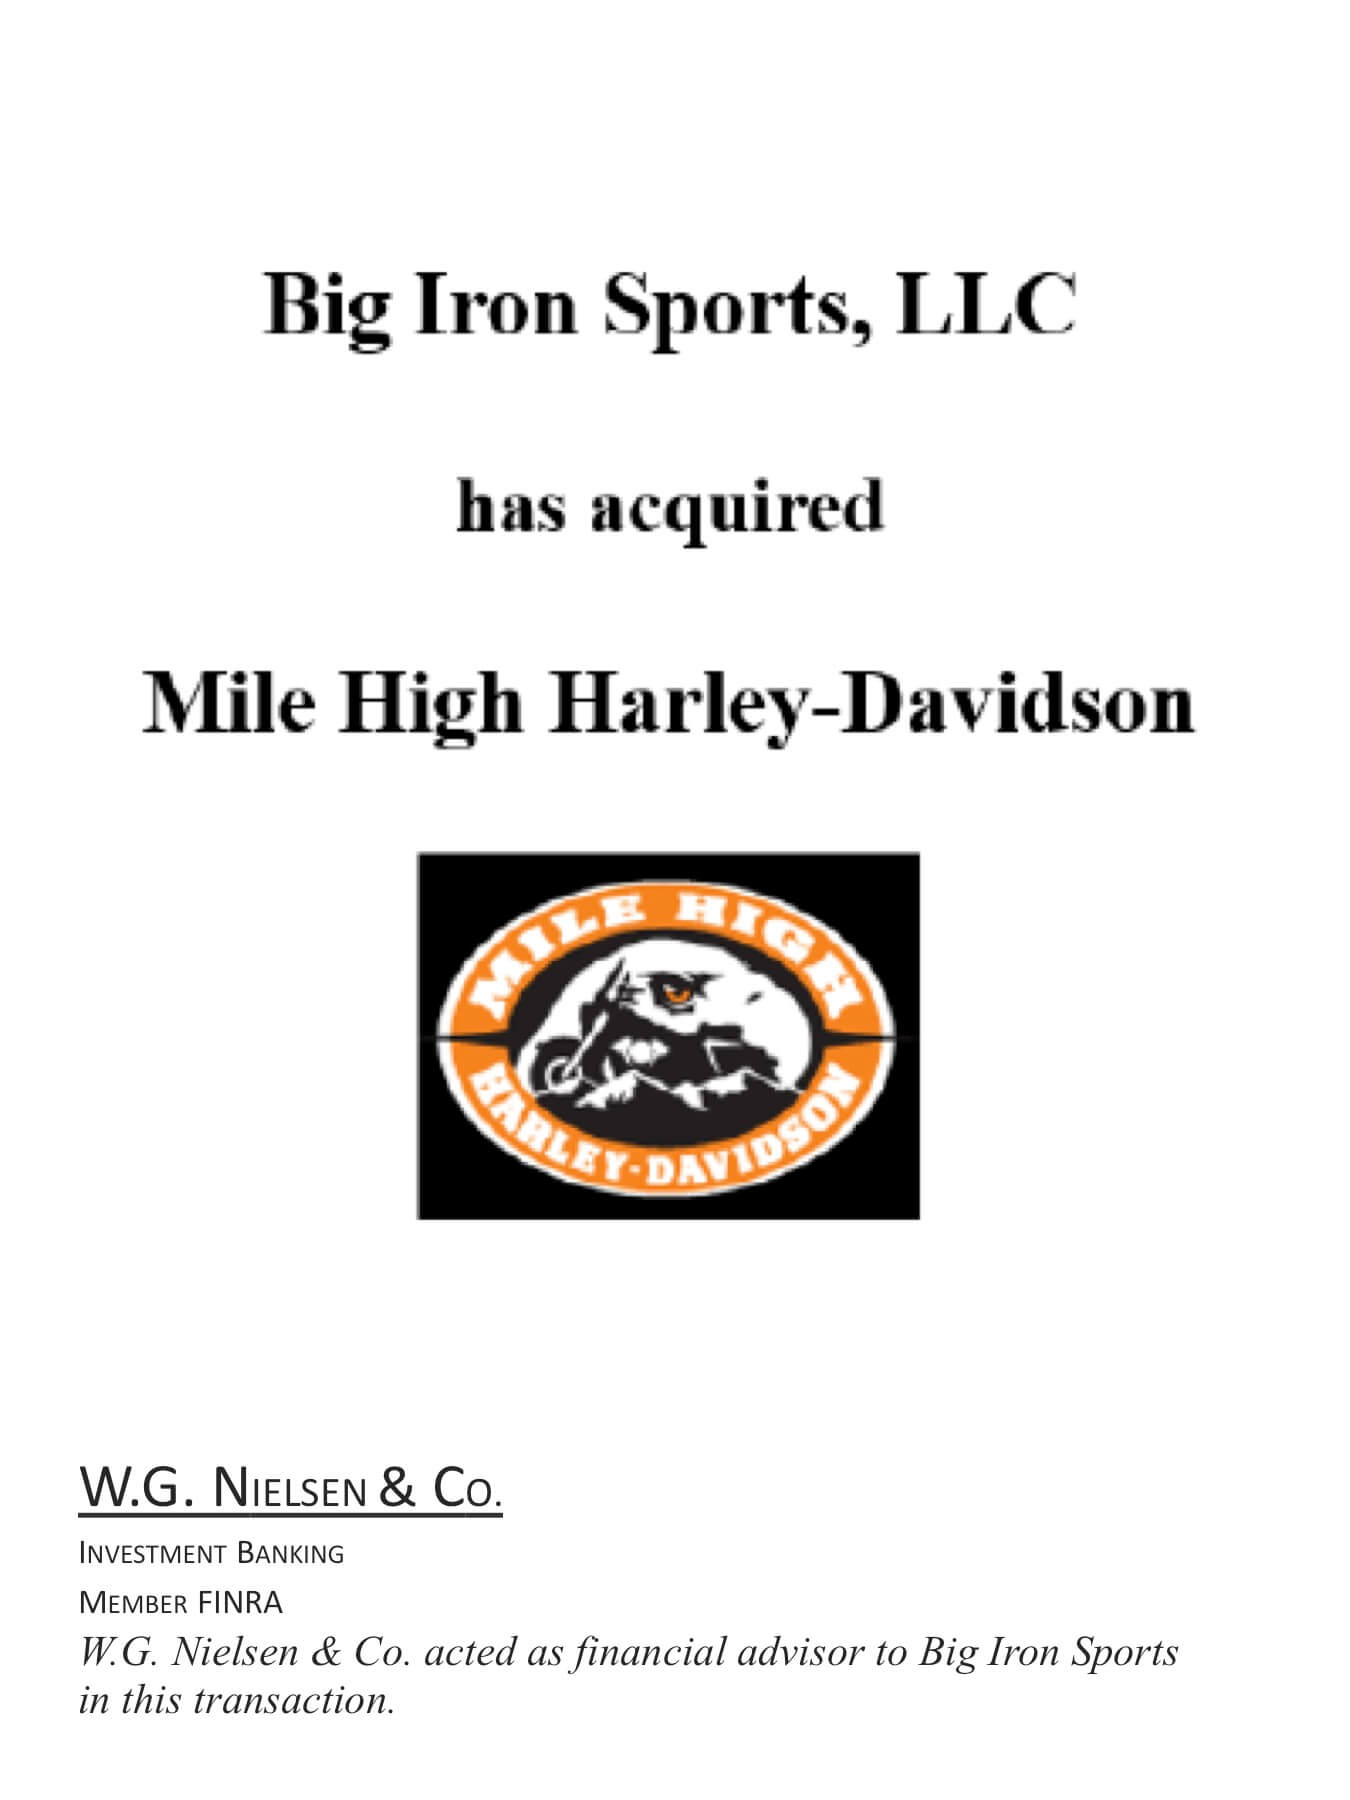 big iron sports investment banking transaction